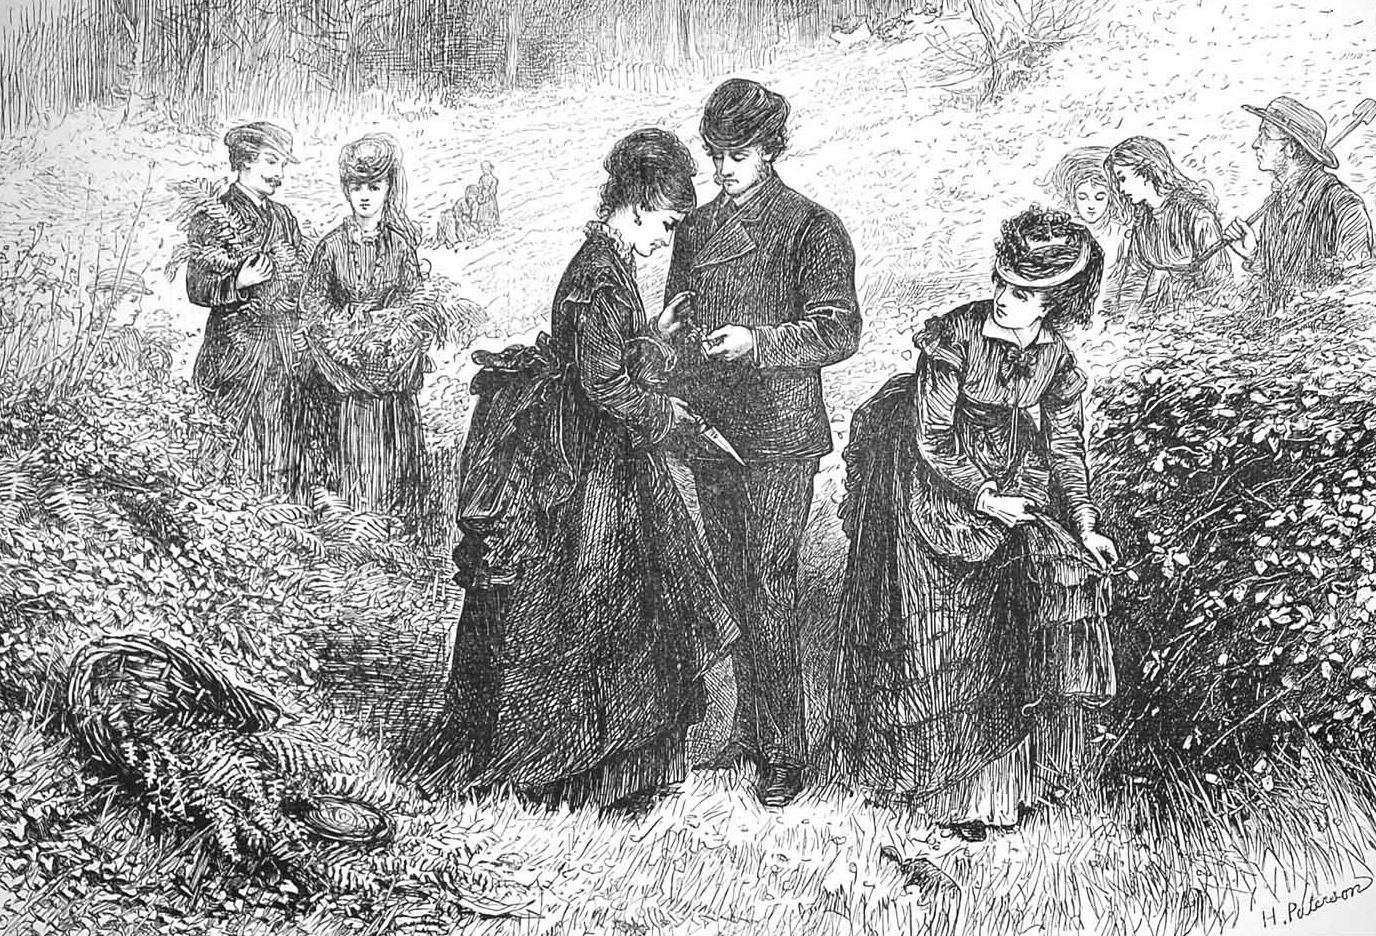 """""""Gathering Ferns,"""" from The Illustrated London News, July 1, 1871, by Helen Paterson Allingham."""